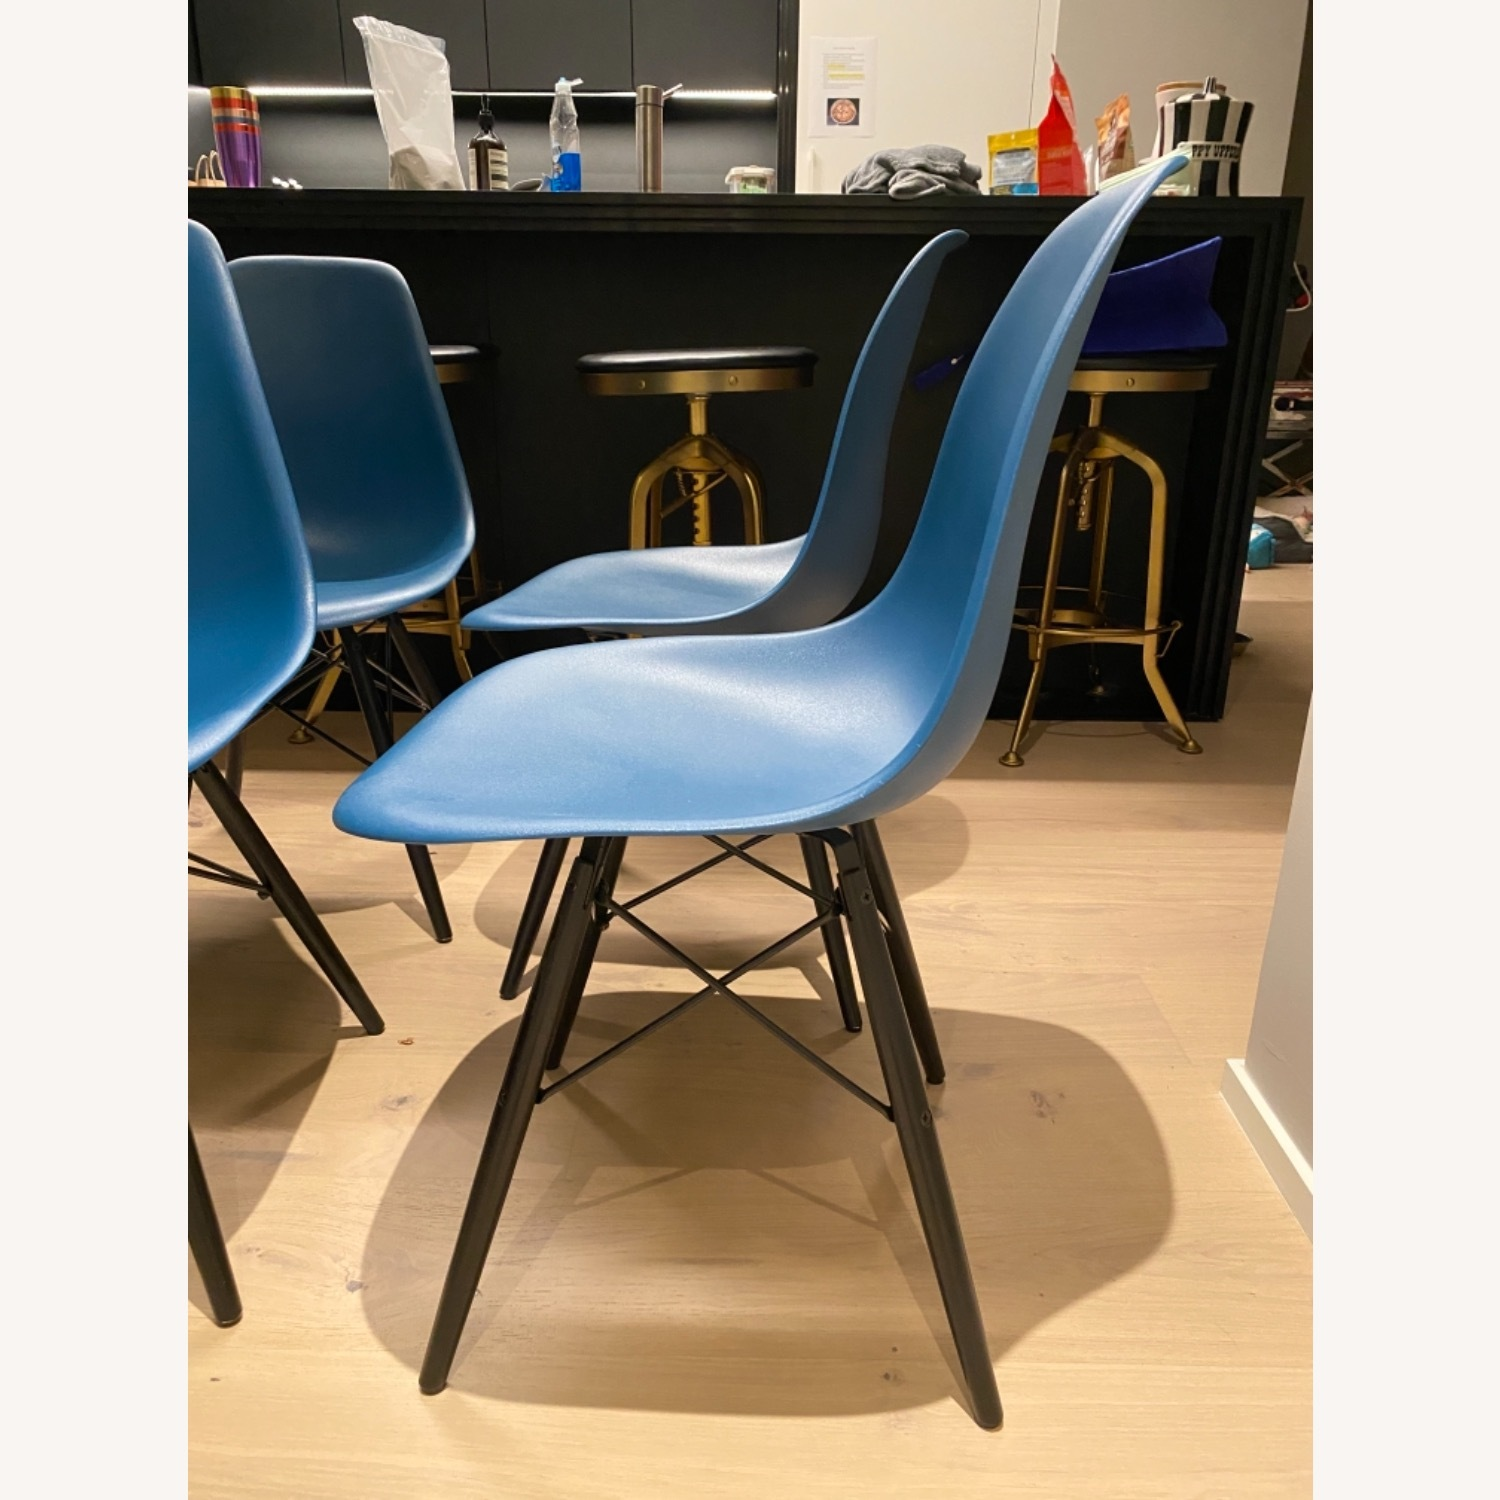 4 x Herman Miller Eames Molded Plastic Side Chair - image-18